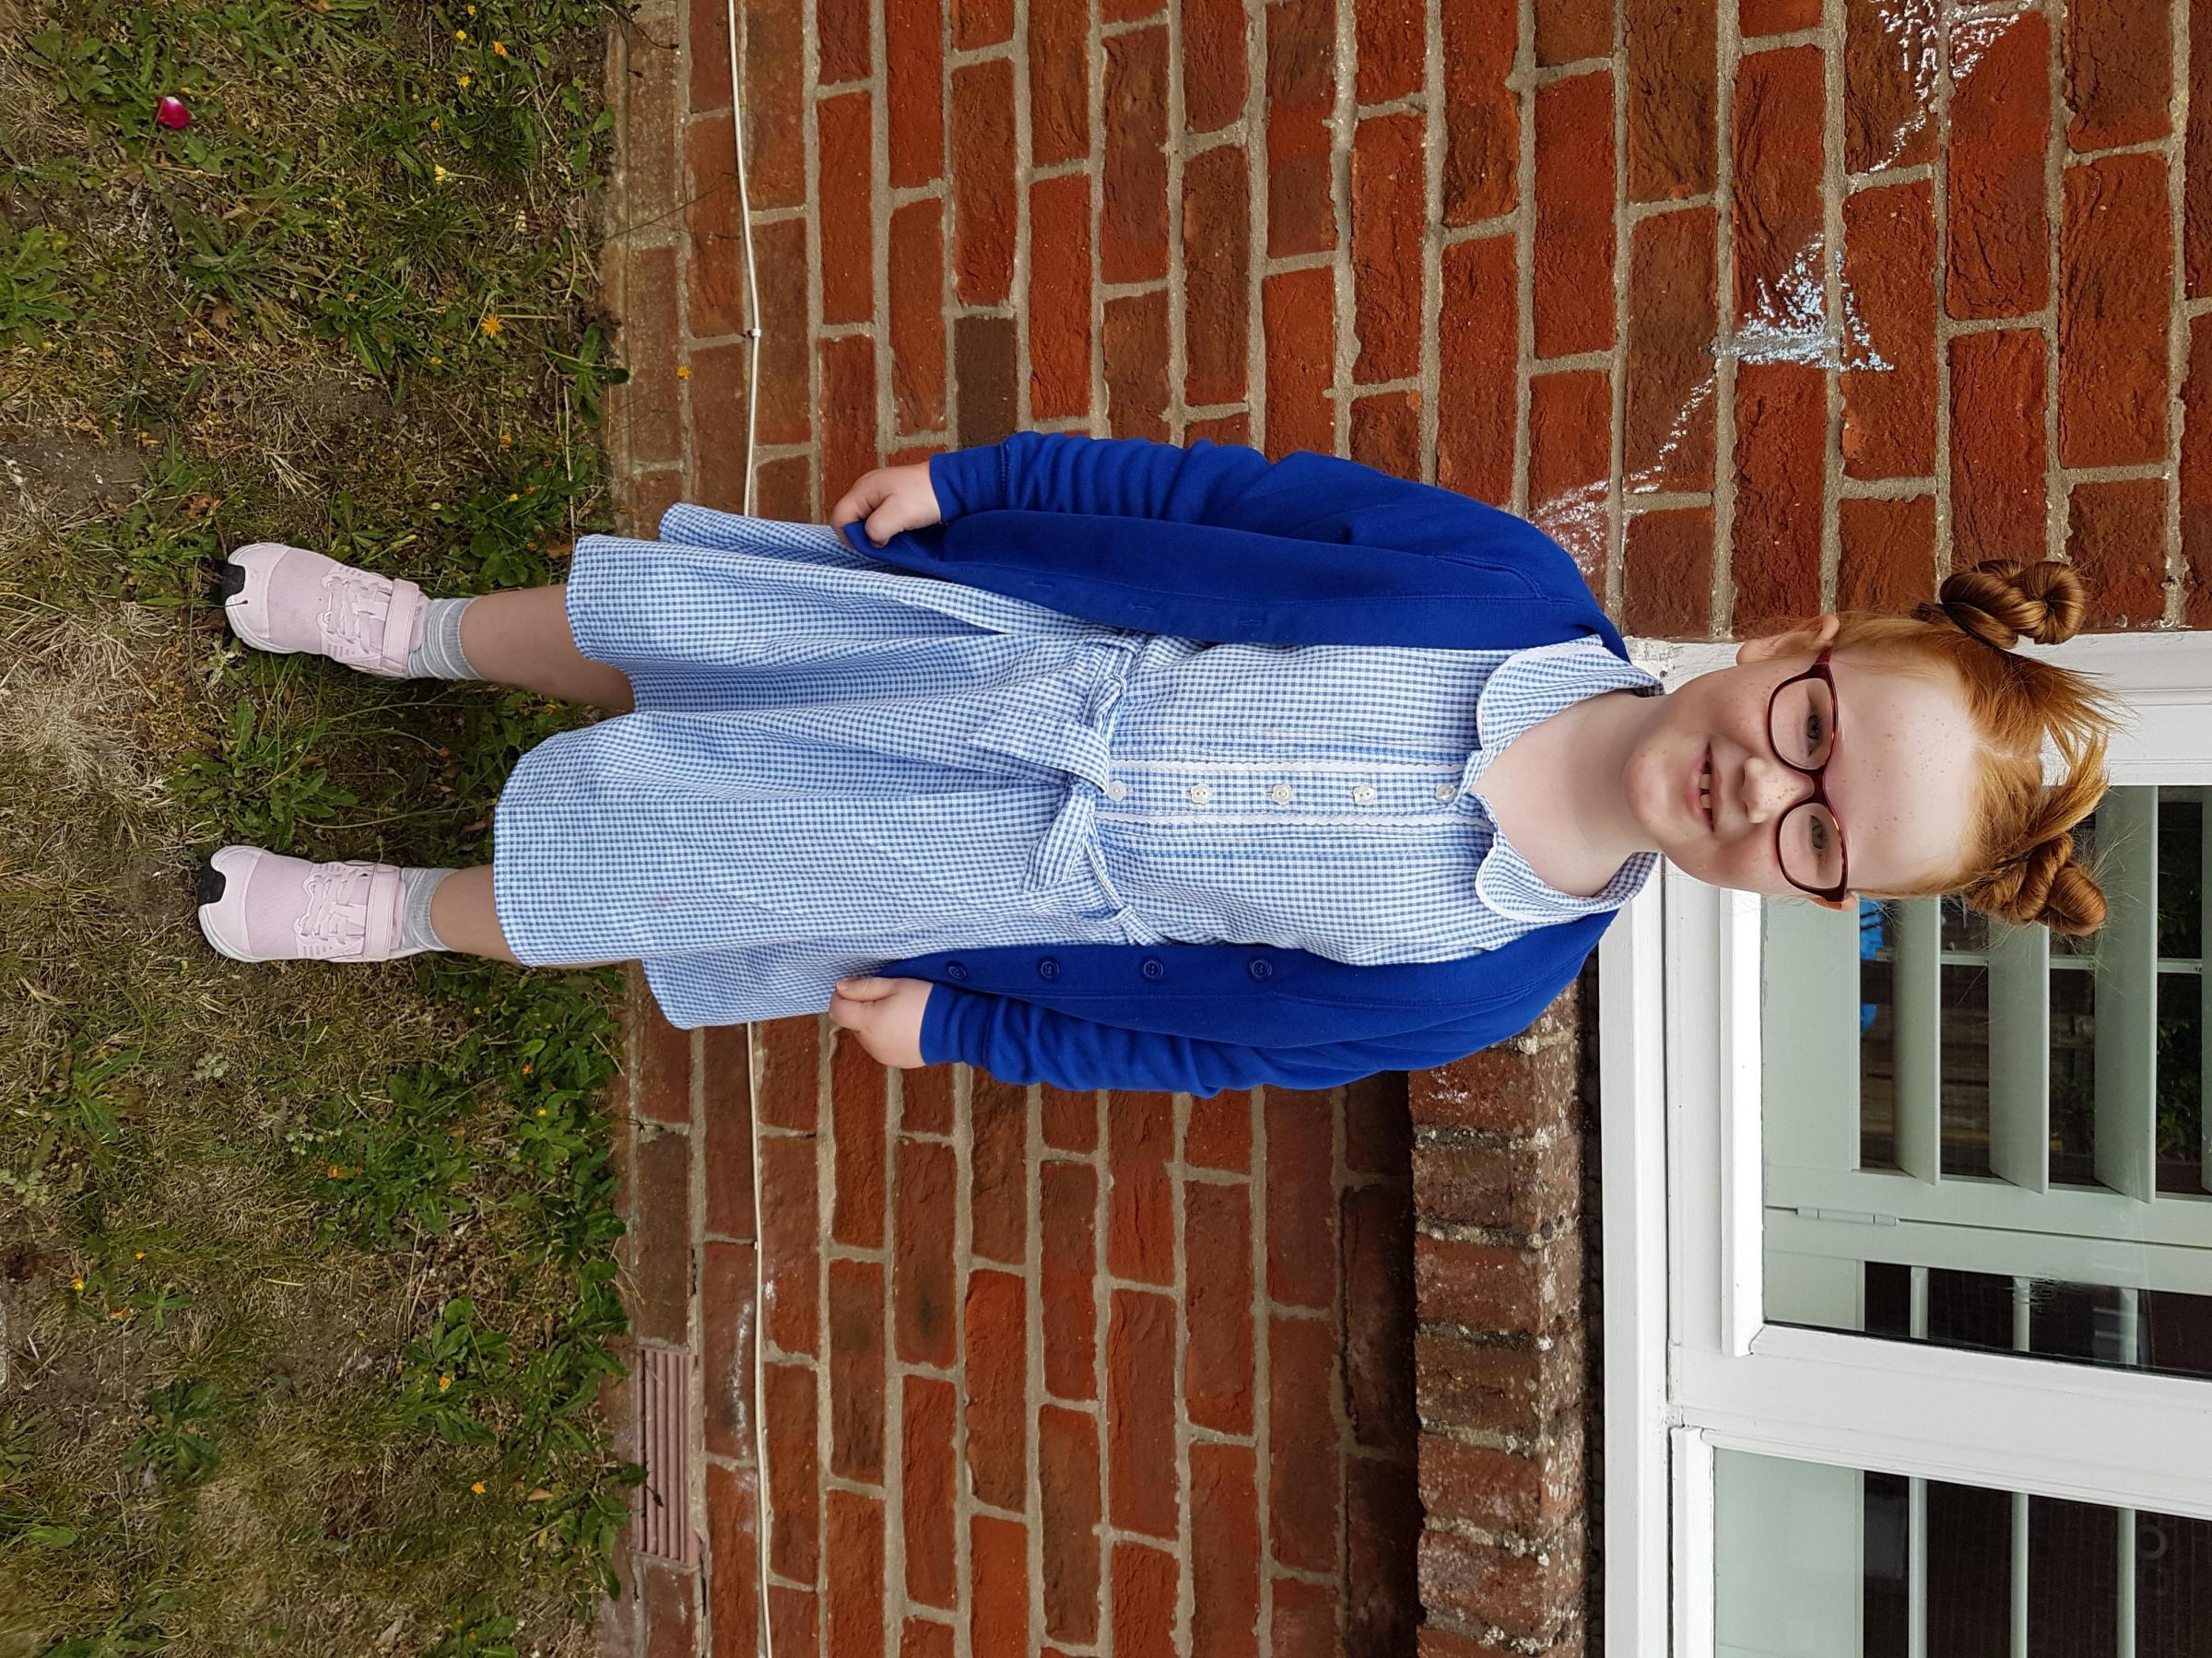 Seven-year-old carer from Poole wins national charity award